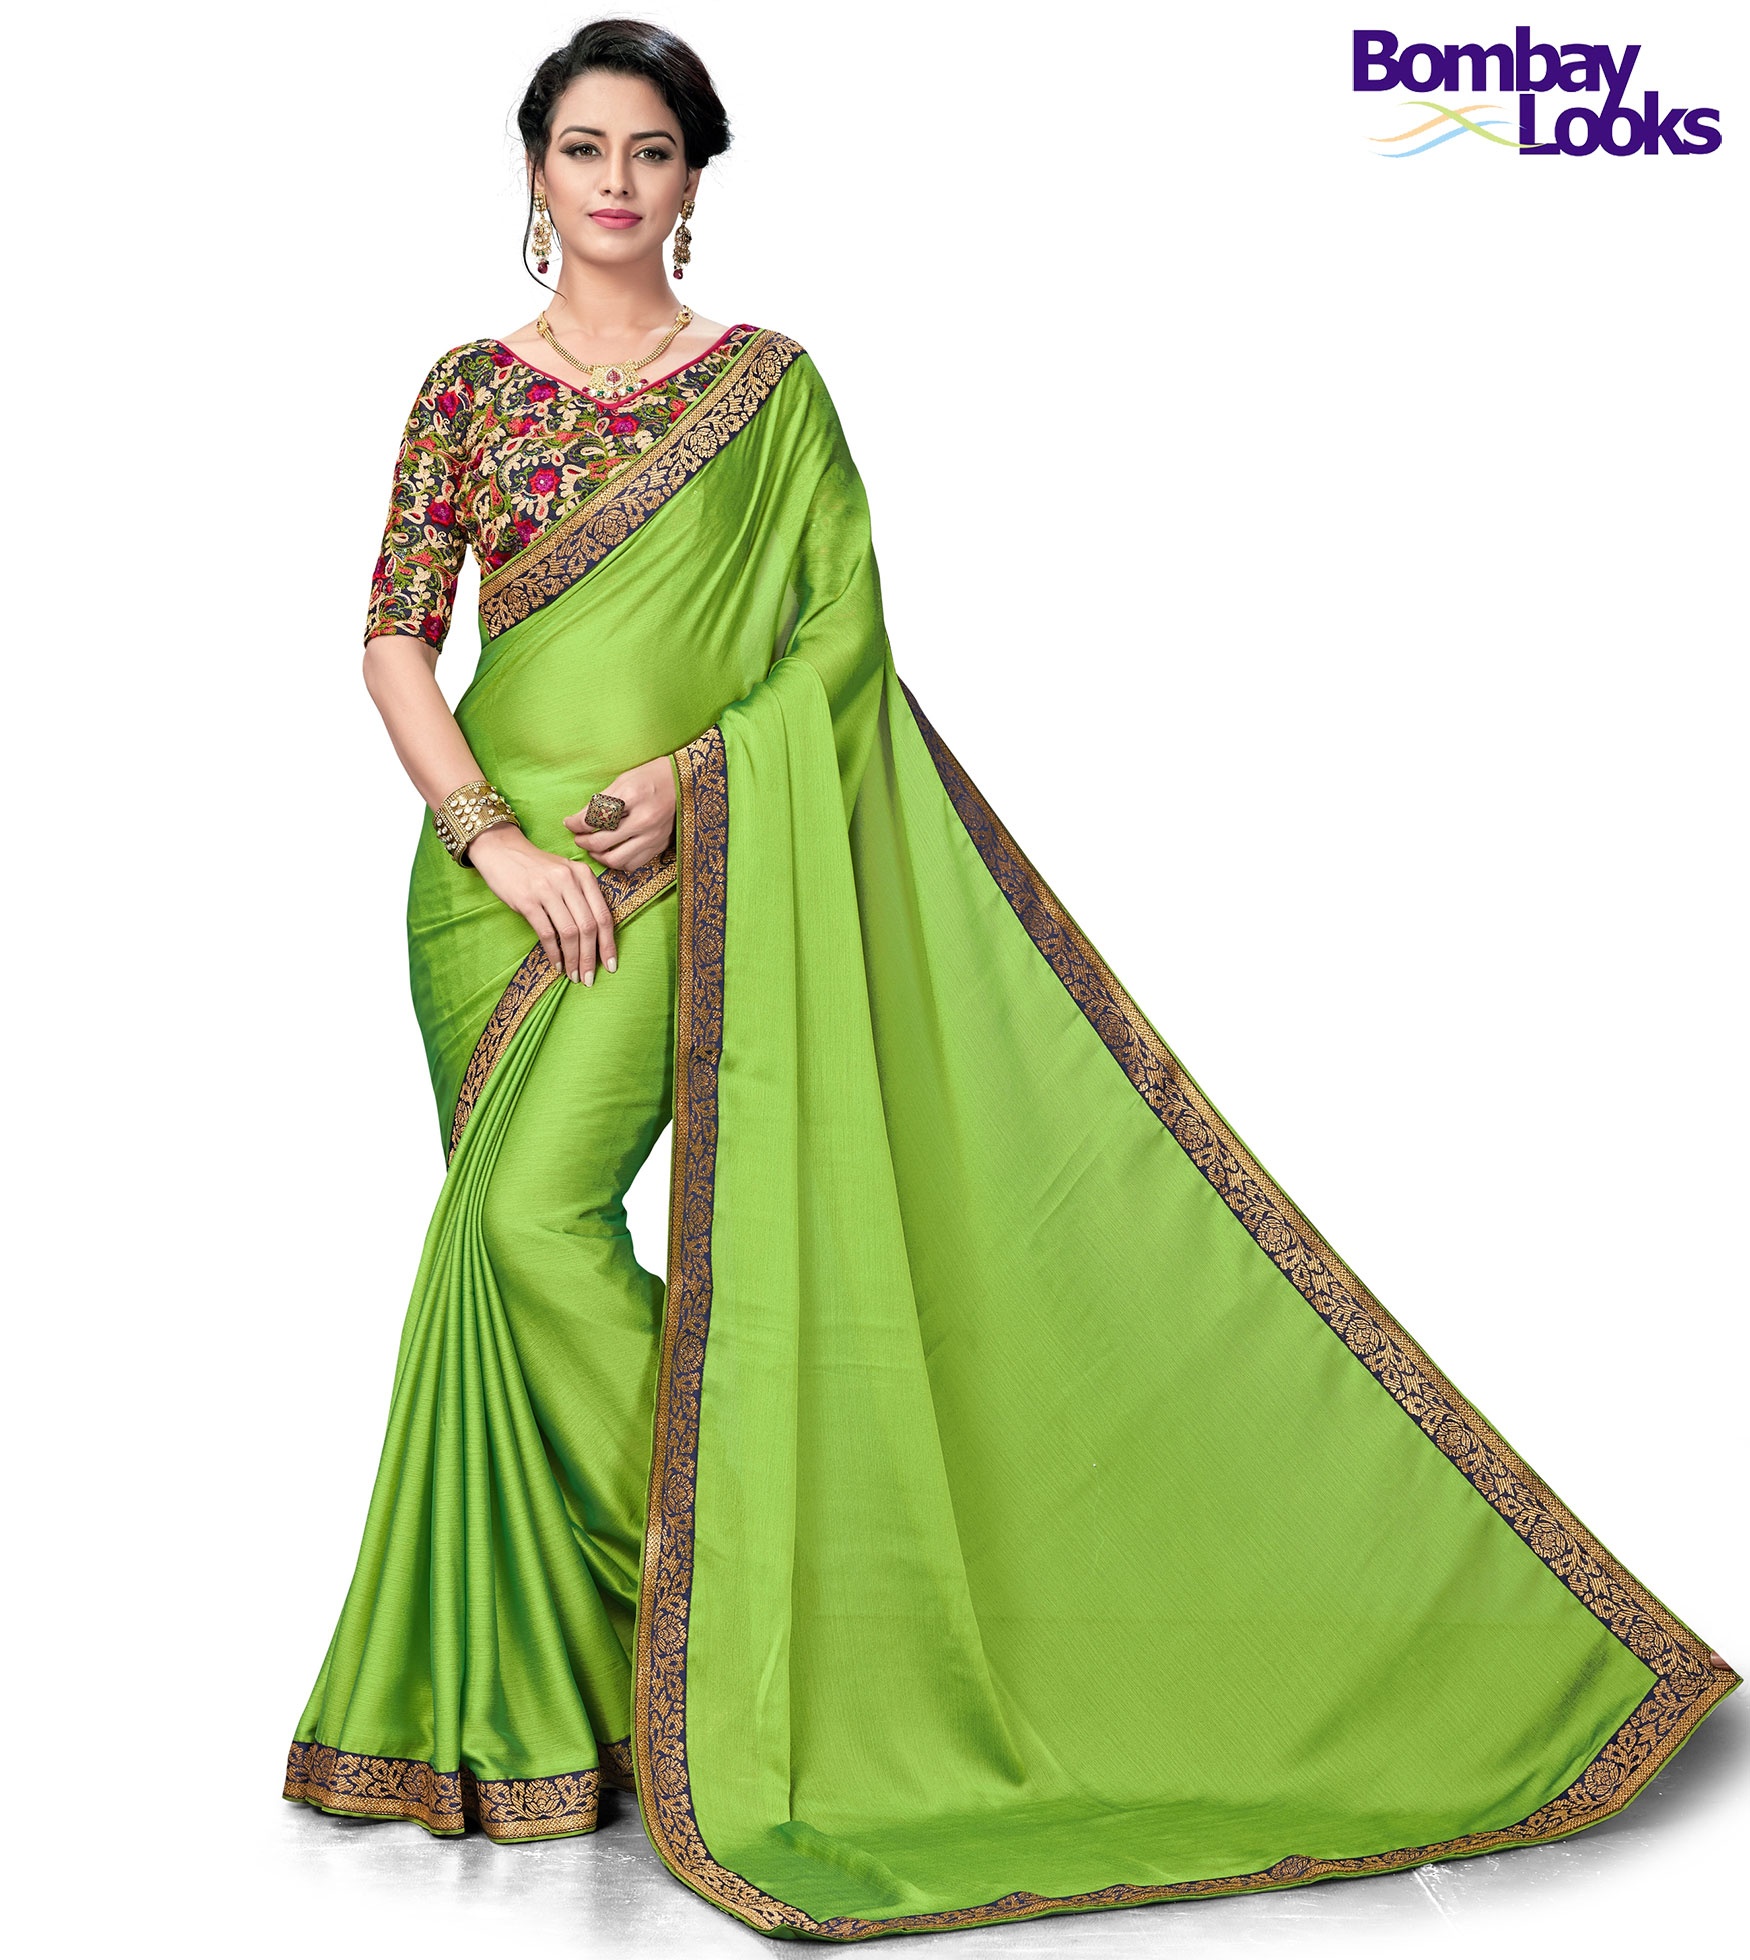 Classic Green chiffon saree with heavy embroidered blouse